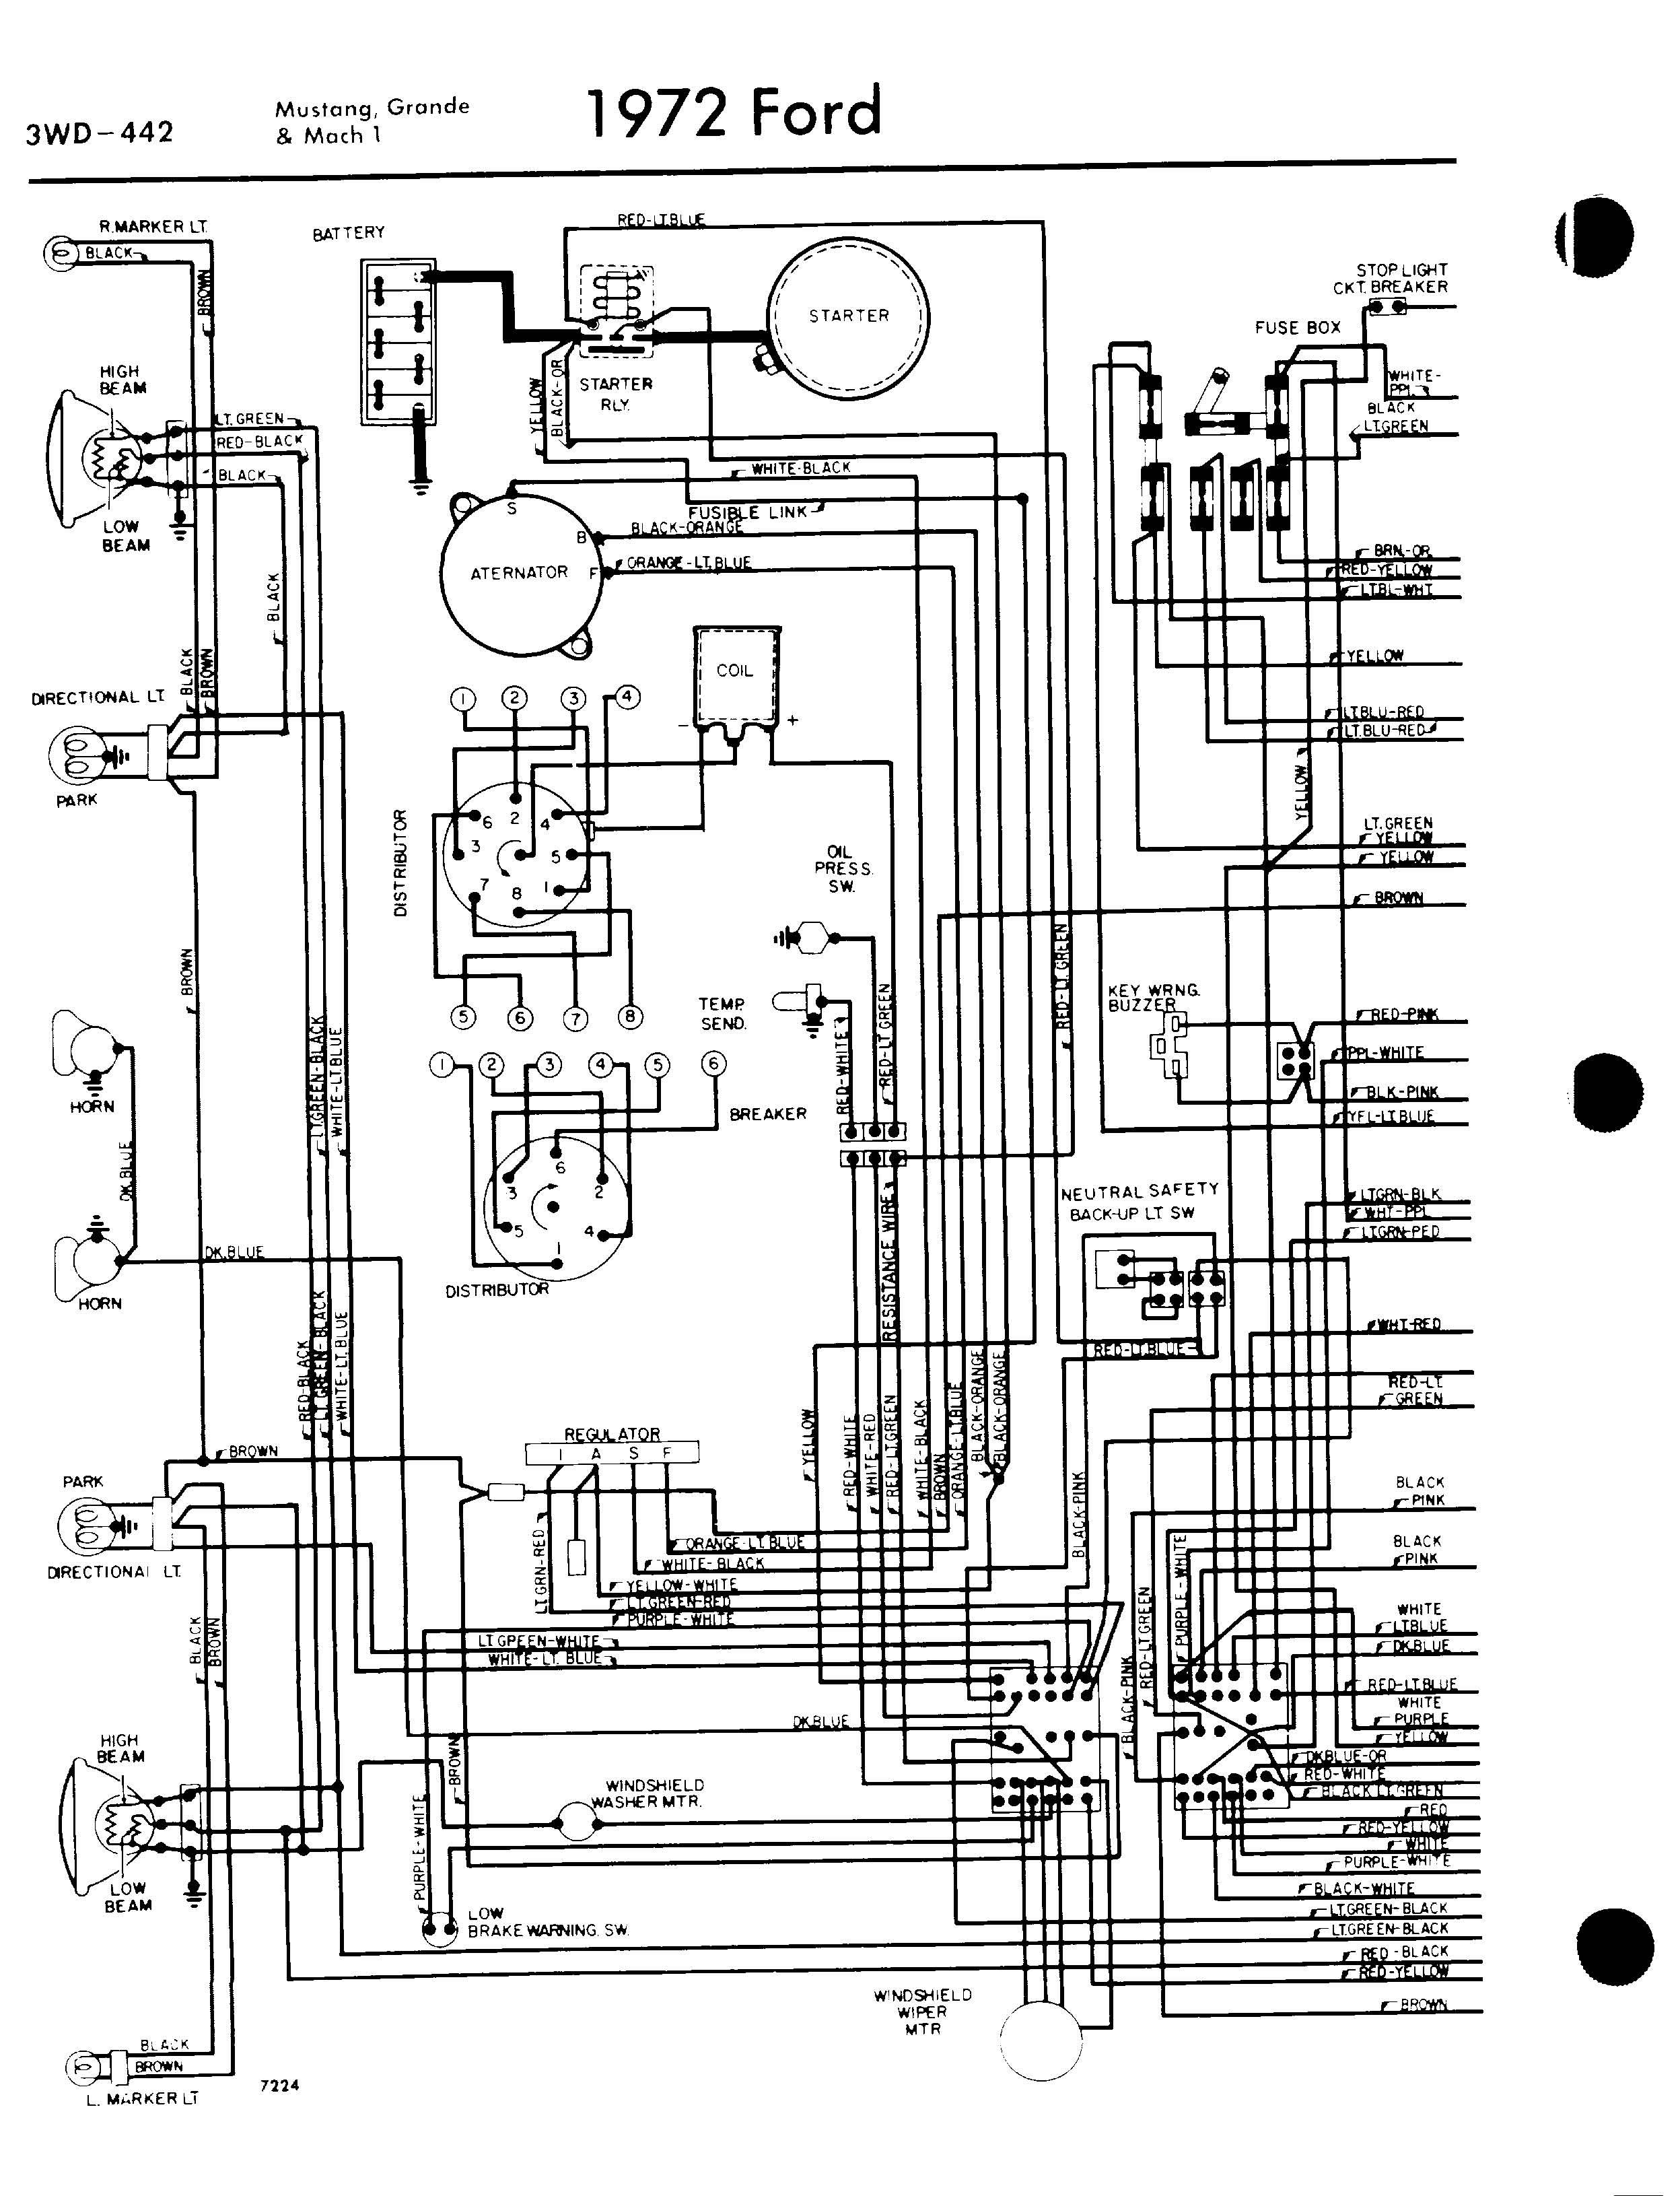 medium resolution of ford 302 wiring diagram wiring diagram for you 1973 mustang wiring diagram 1974 ford 302 engine